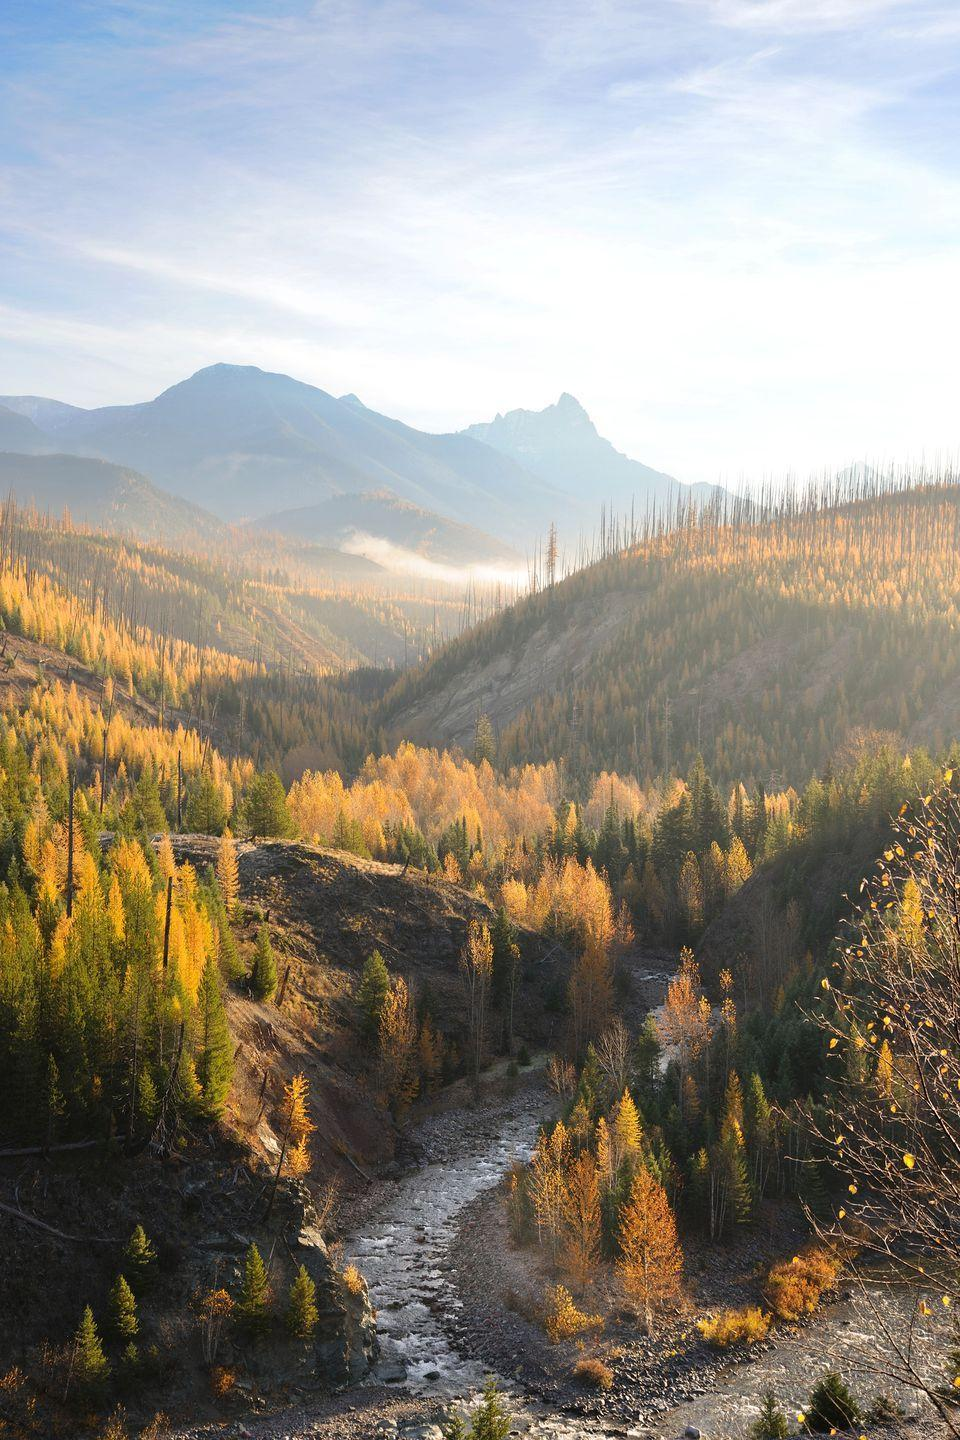 """<p>Every fall, the larch trees in Montana's Glacier National Park turn a dazzling, luminescent yellow. Local tip: The best road for viewing the larches is on Highway 2 around the southern boundary of the park.</p><p><a class=""""link rapid-noclick-resp"""" href=""""https://go.redirectingat.com?id=74968X1596630&url=https%3A%2F%2Fwww.tripadvisor.com%2FHotels-g143026-Glacier_National_Park_Montana-Hotels.html&sref=https%3A%2F%2Fwww.thepioneerwoman.com%2Fhome-lifestyle%2Fg36804013%2Fbest-places-to-see-fall-foliage%2F"""" rel=""""nofollow noopener"""" target=""""_blank"""" data-ylk=""""slk:FIND A HOTEL"""">FIND A HOTEL</a></p>"""